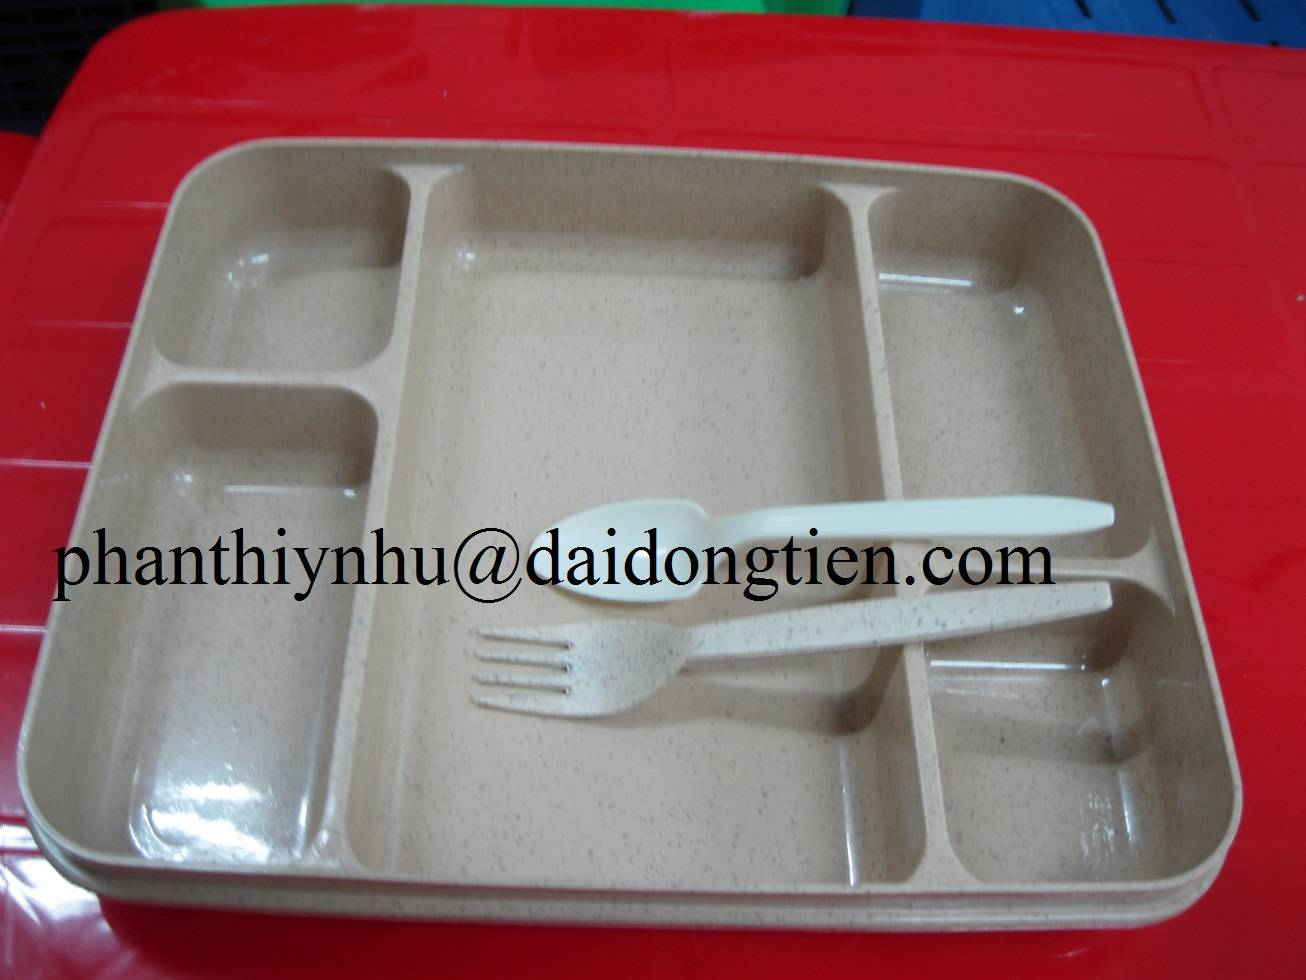 Supply plastic lunch box - 6 drawers